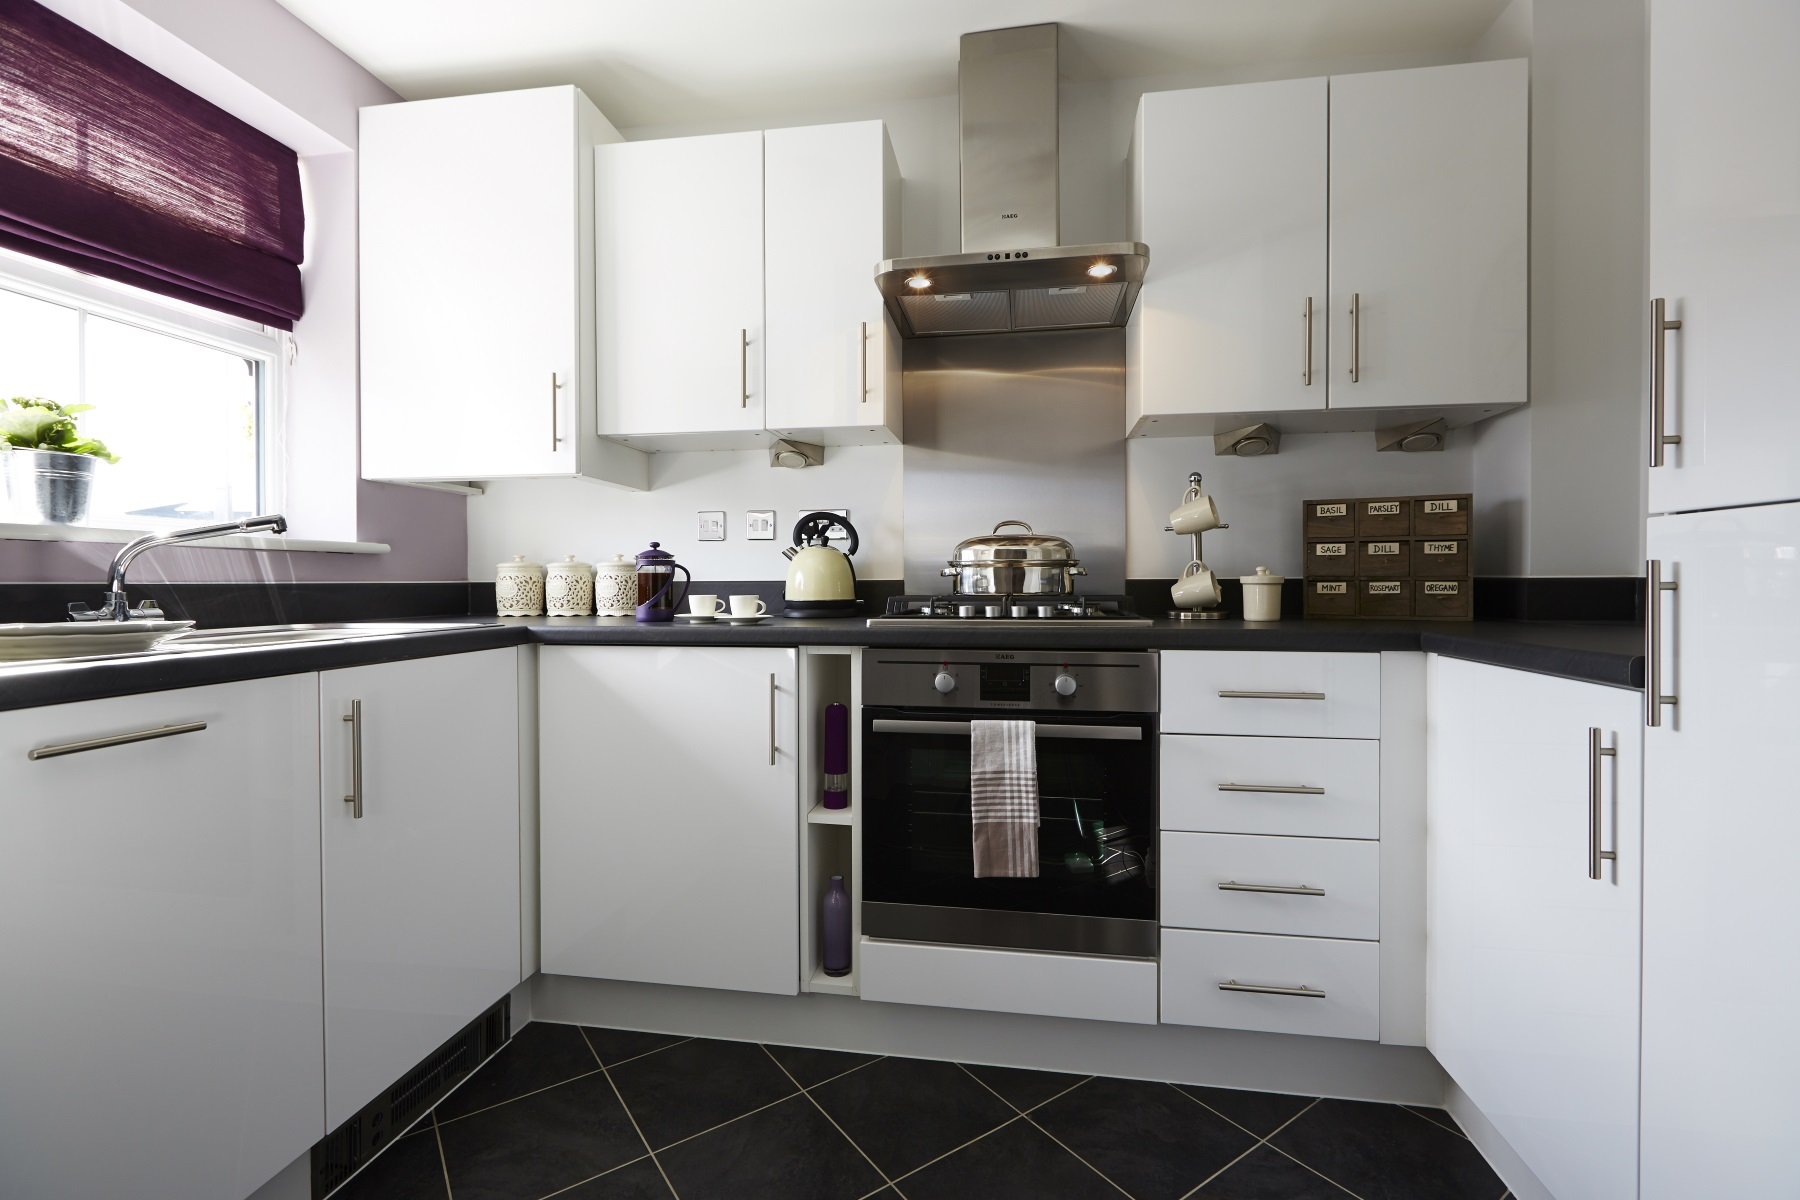 TW Exeter - Cranbrook - Canford example kitchen